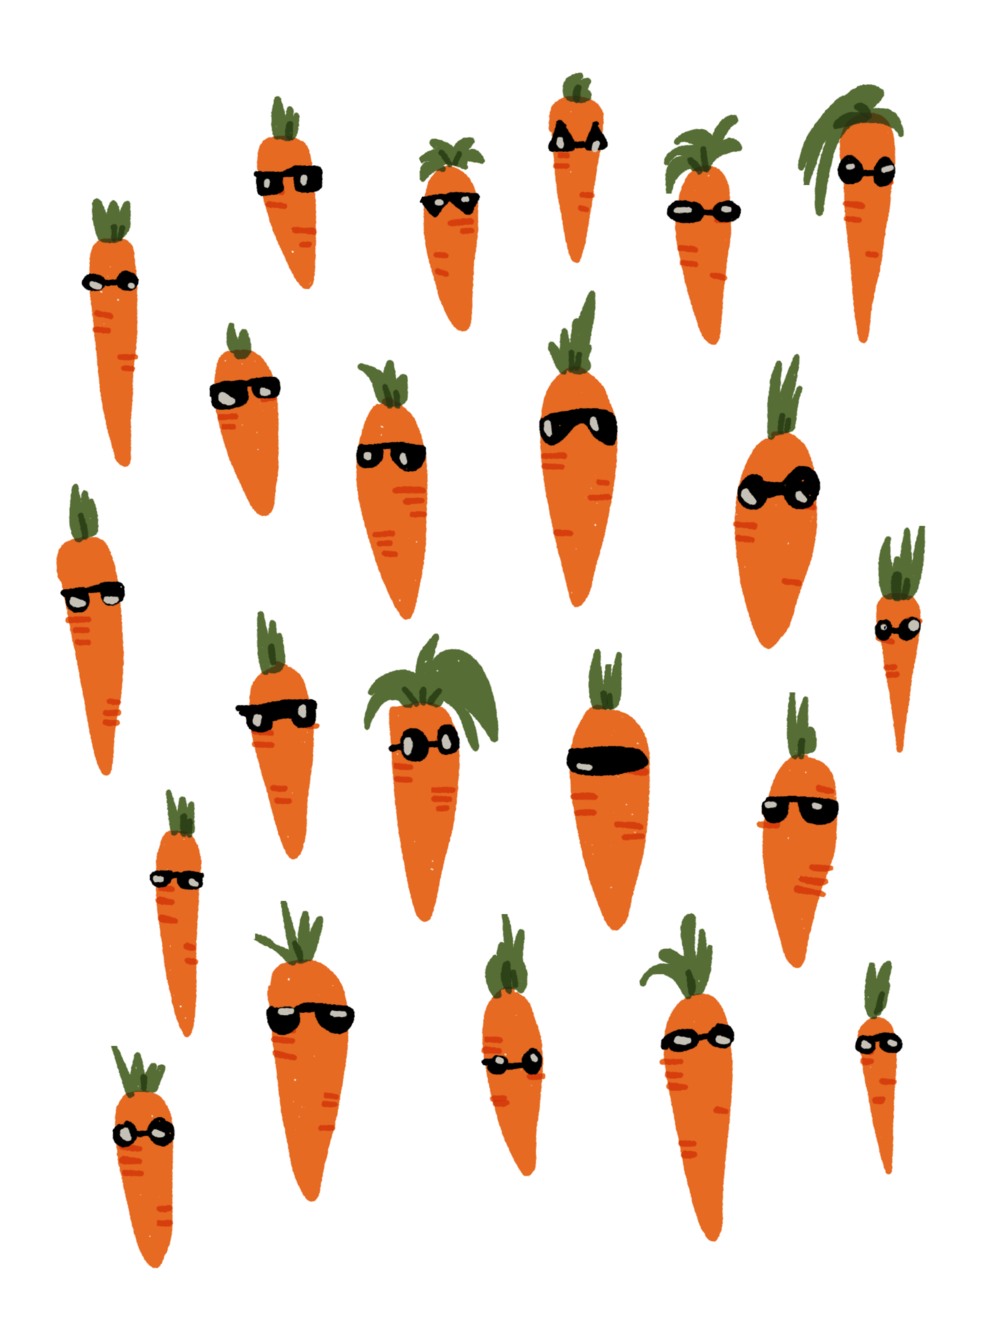 carrotsunnie